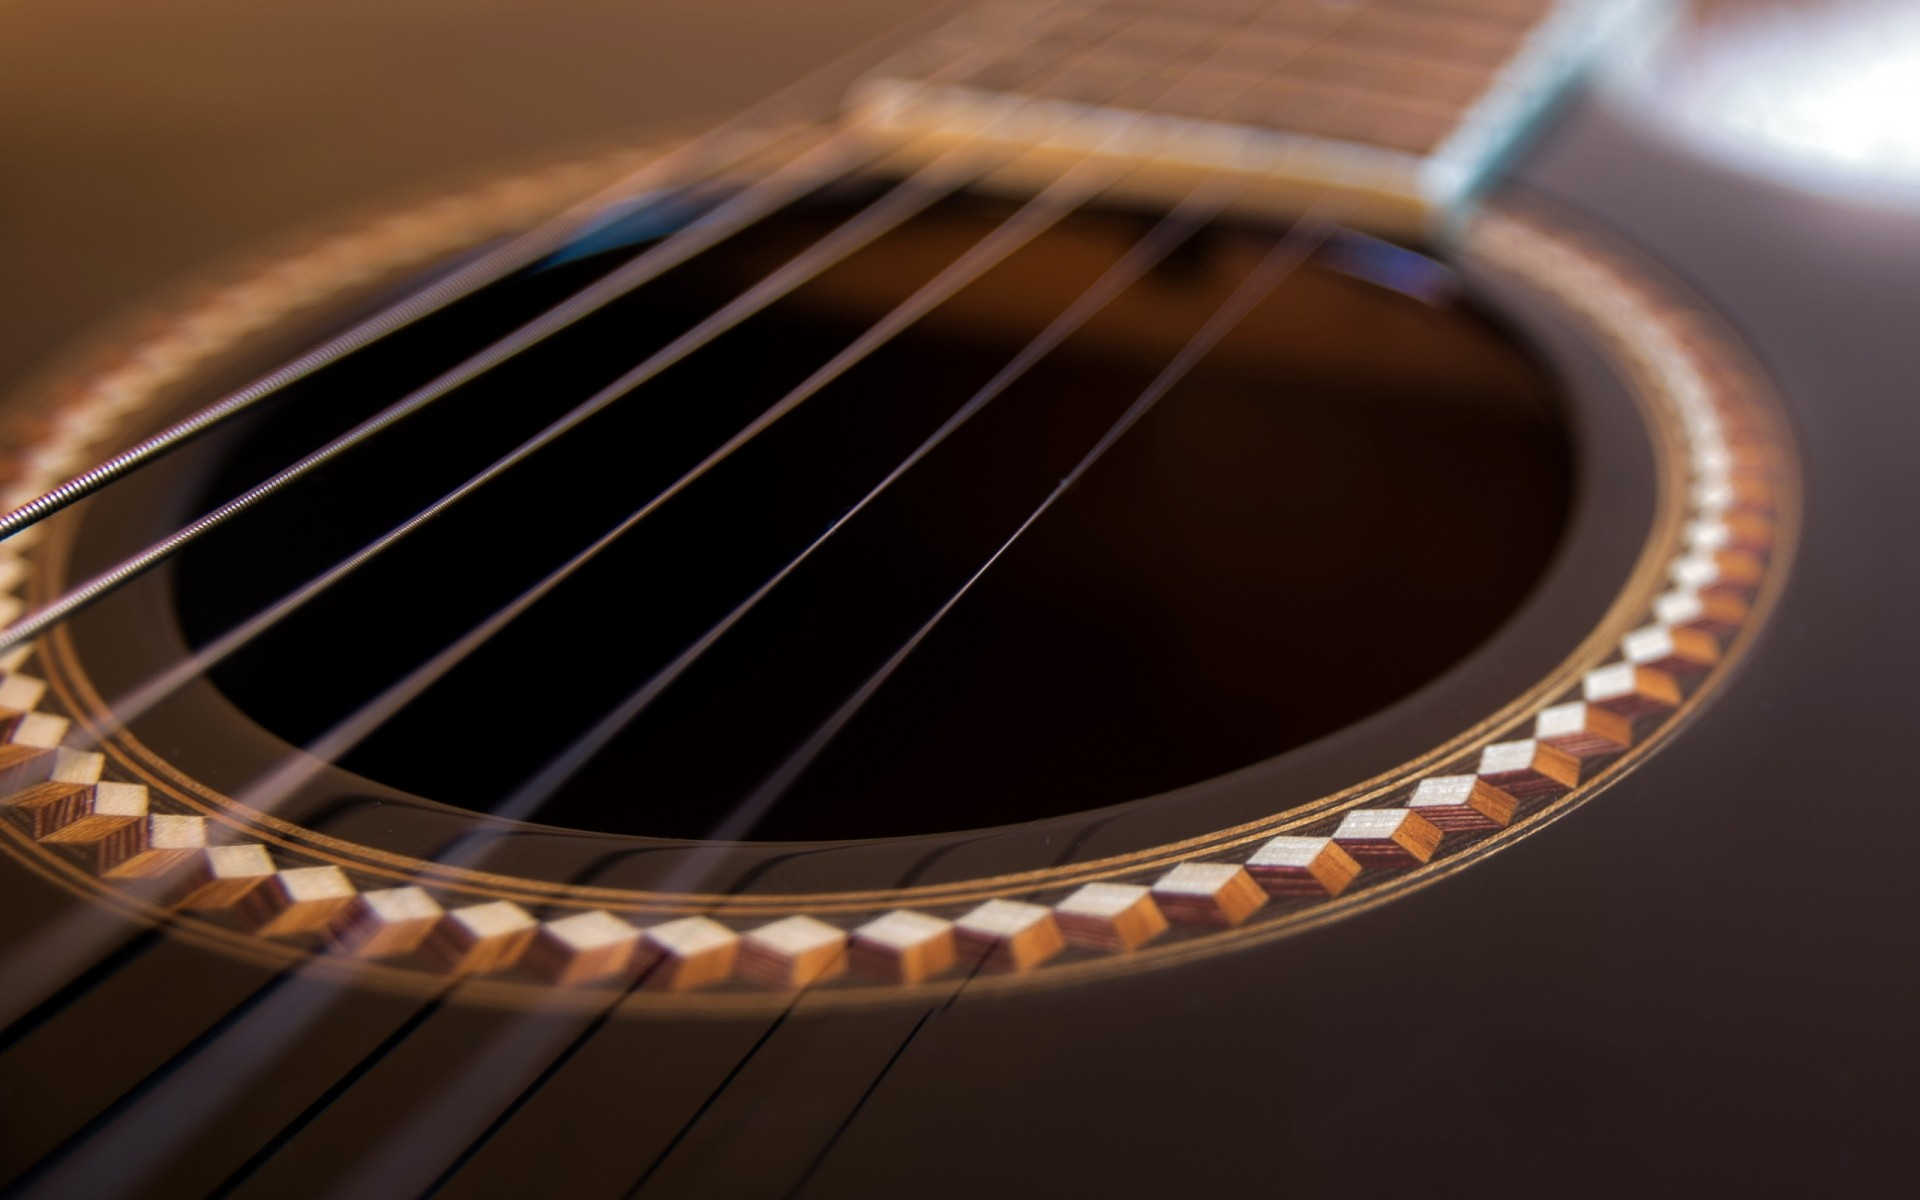 Guitar Chords Desktop Wallpapers For Free